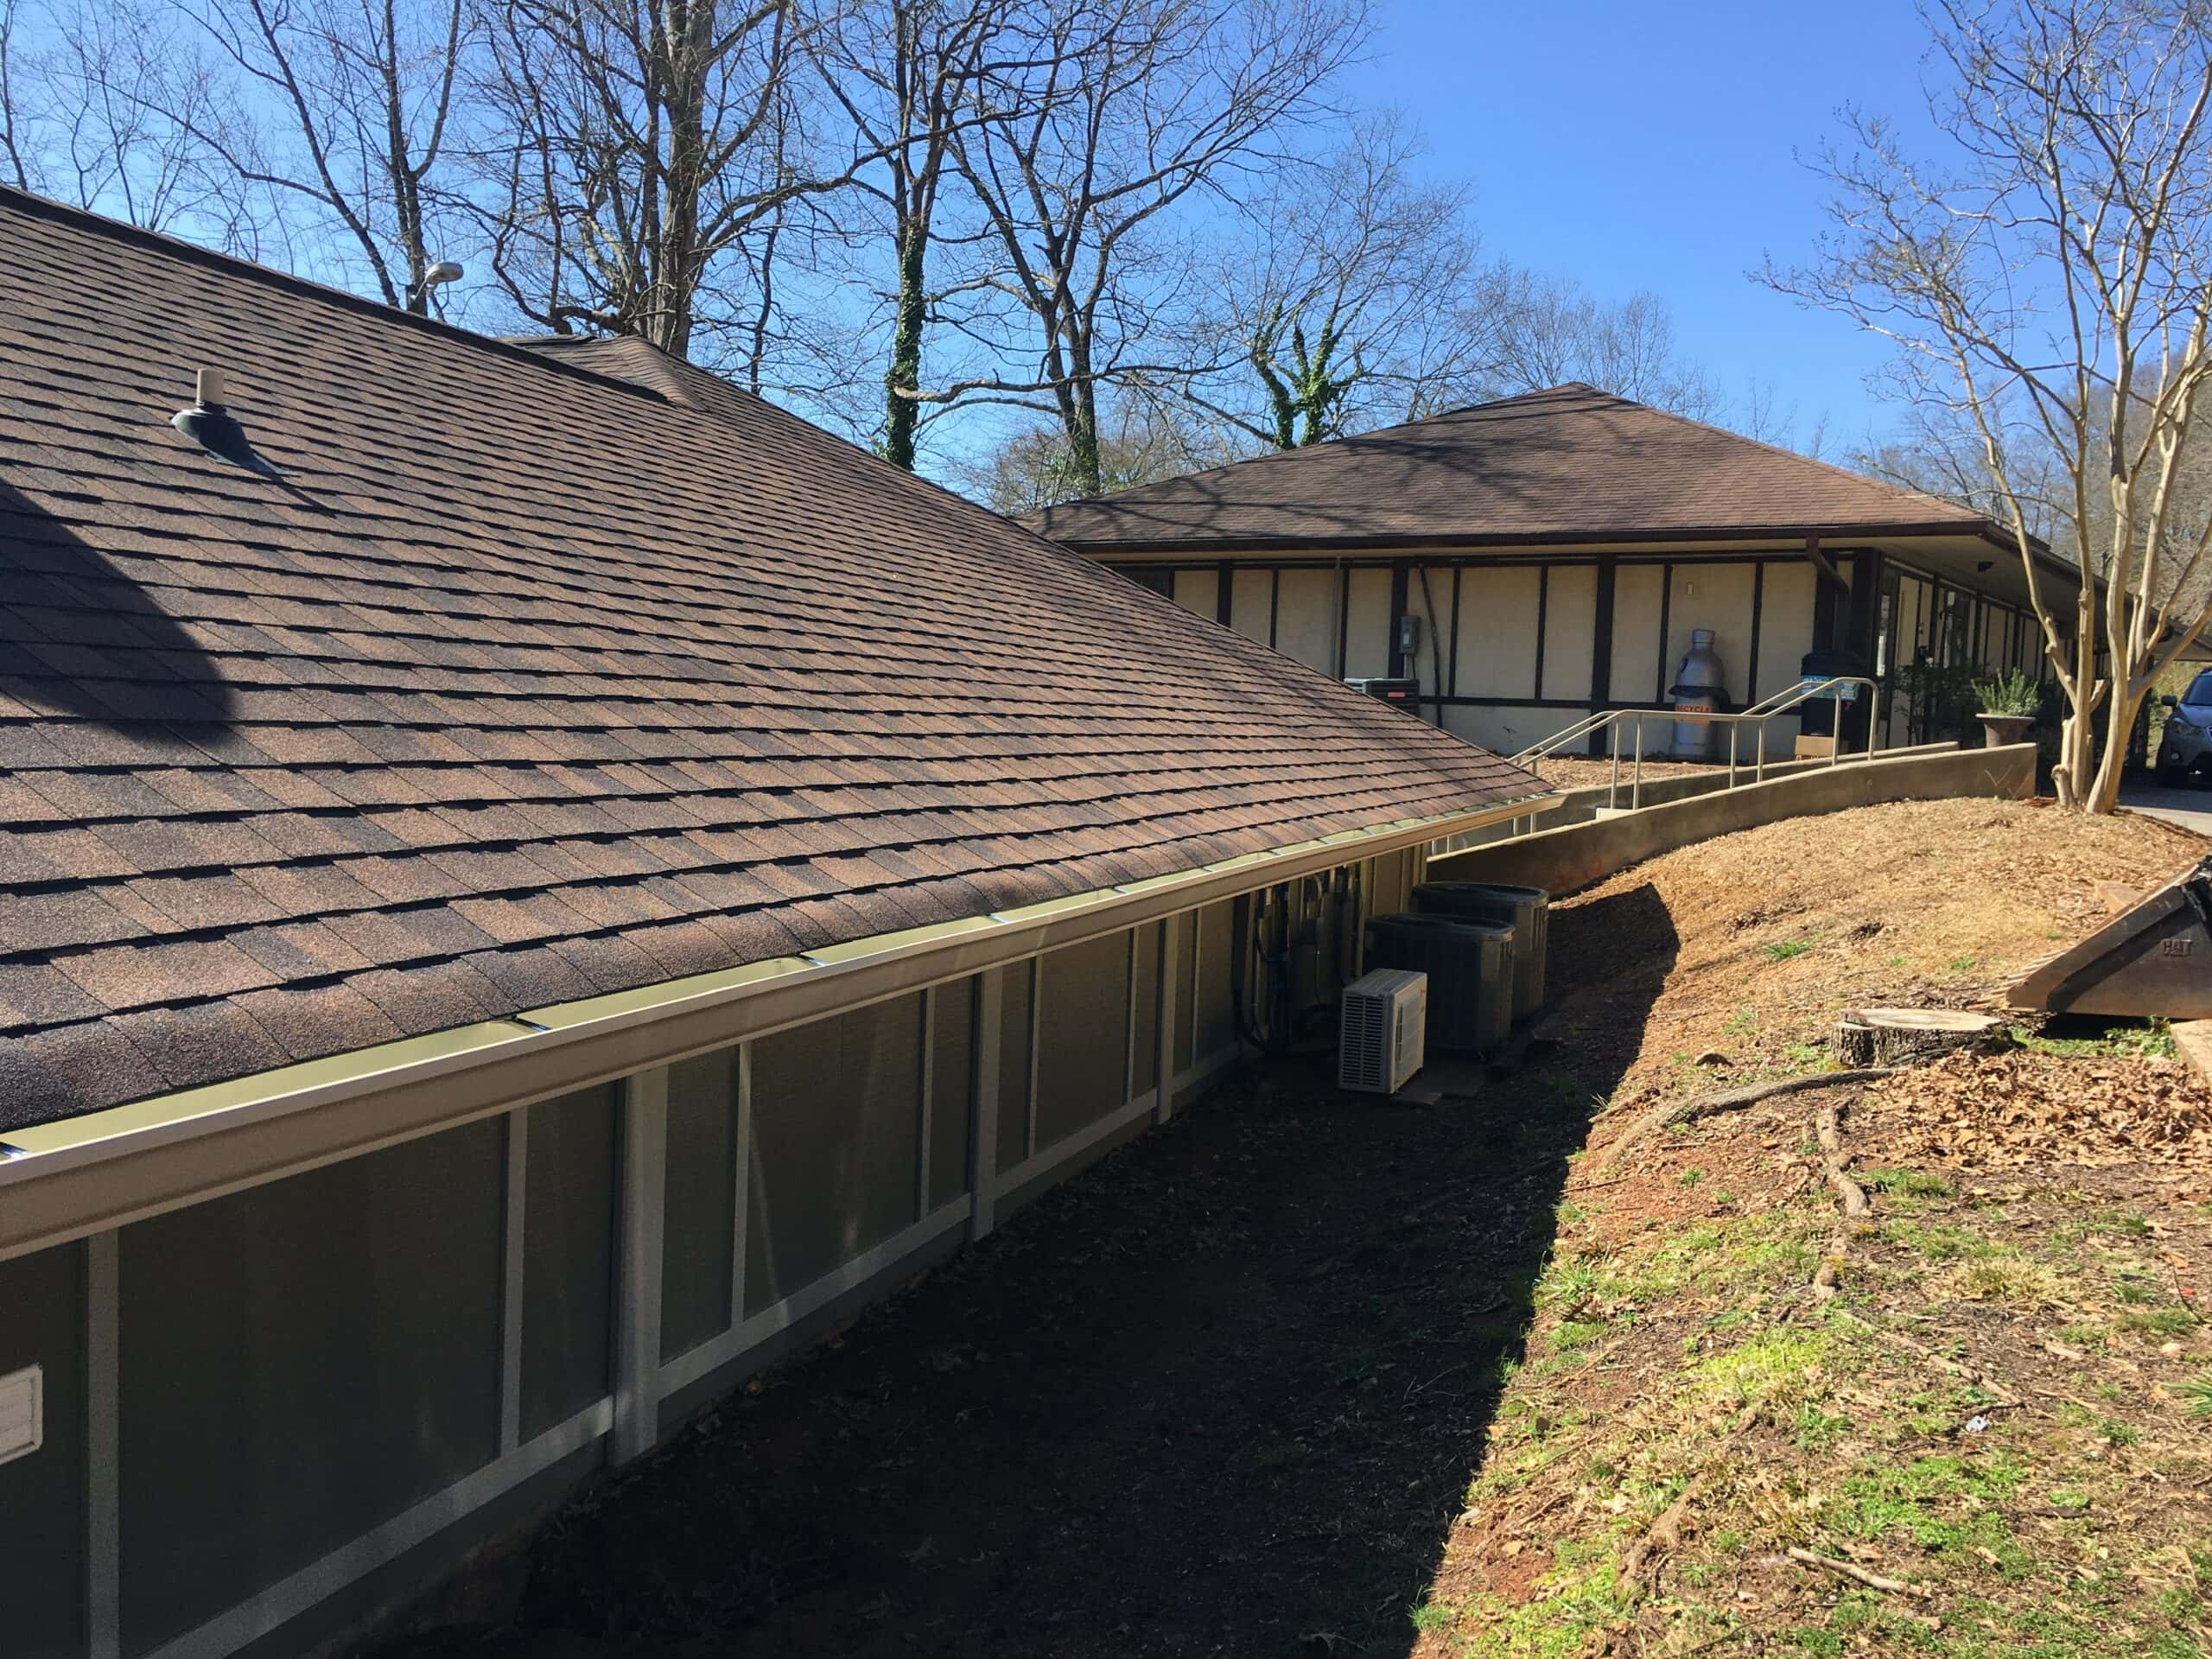 Picture of the Greenville Zoo Veterinary Clinic project DEVITA provided consulting, design, and engineering service for the MEP renovations of the projec.t